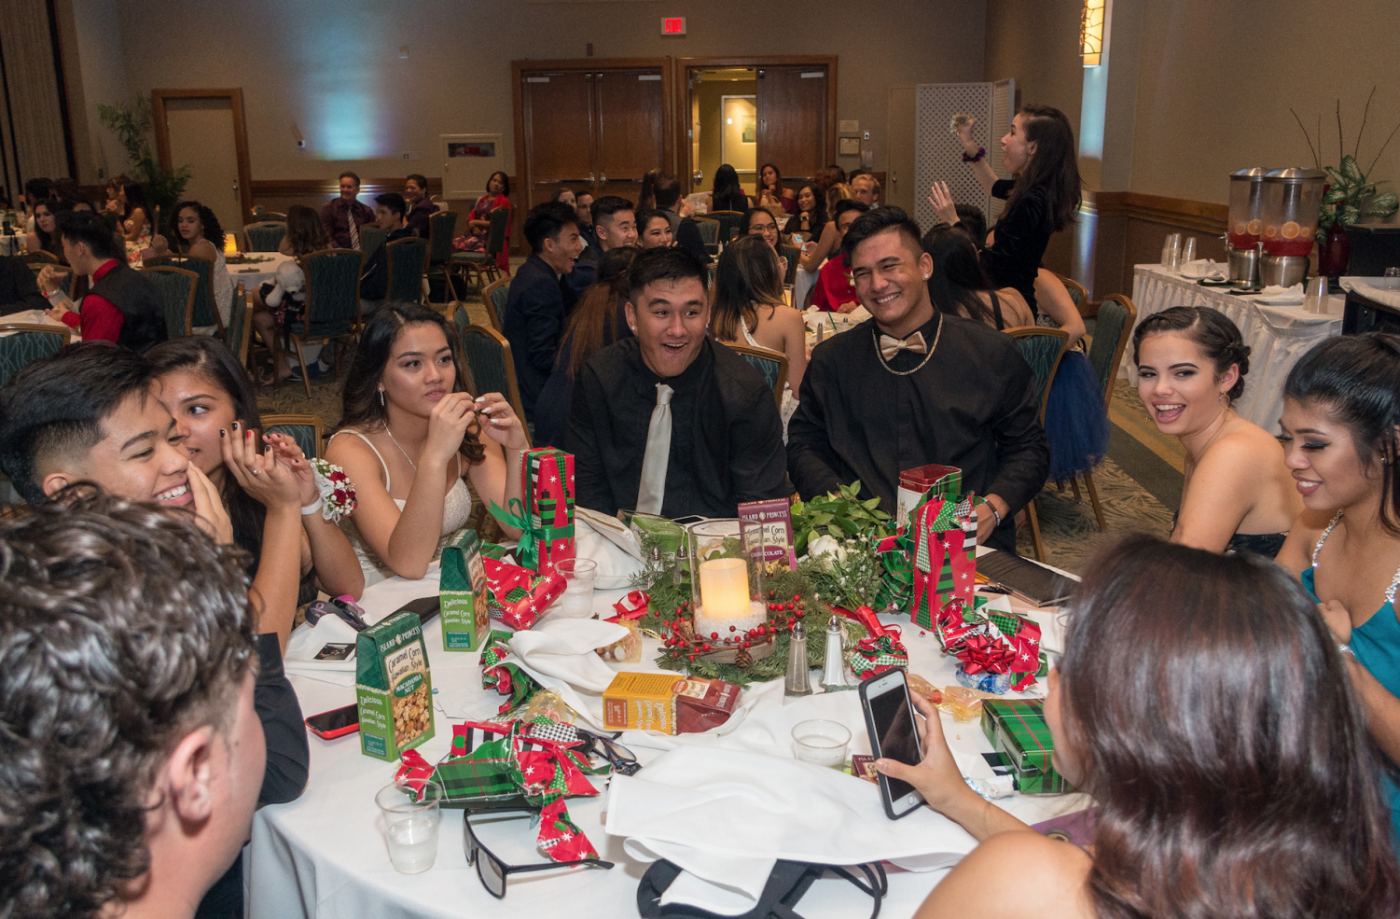 For the first time in school history, Academy students were allowed to bring female guests to the Winter Ball. Photo courtesy of Steven Tagupa.